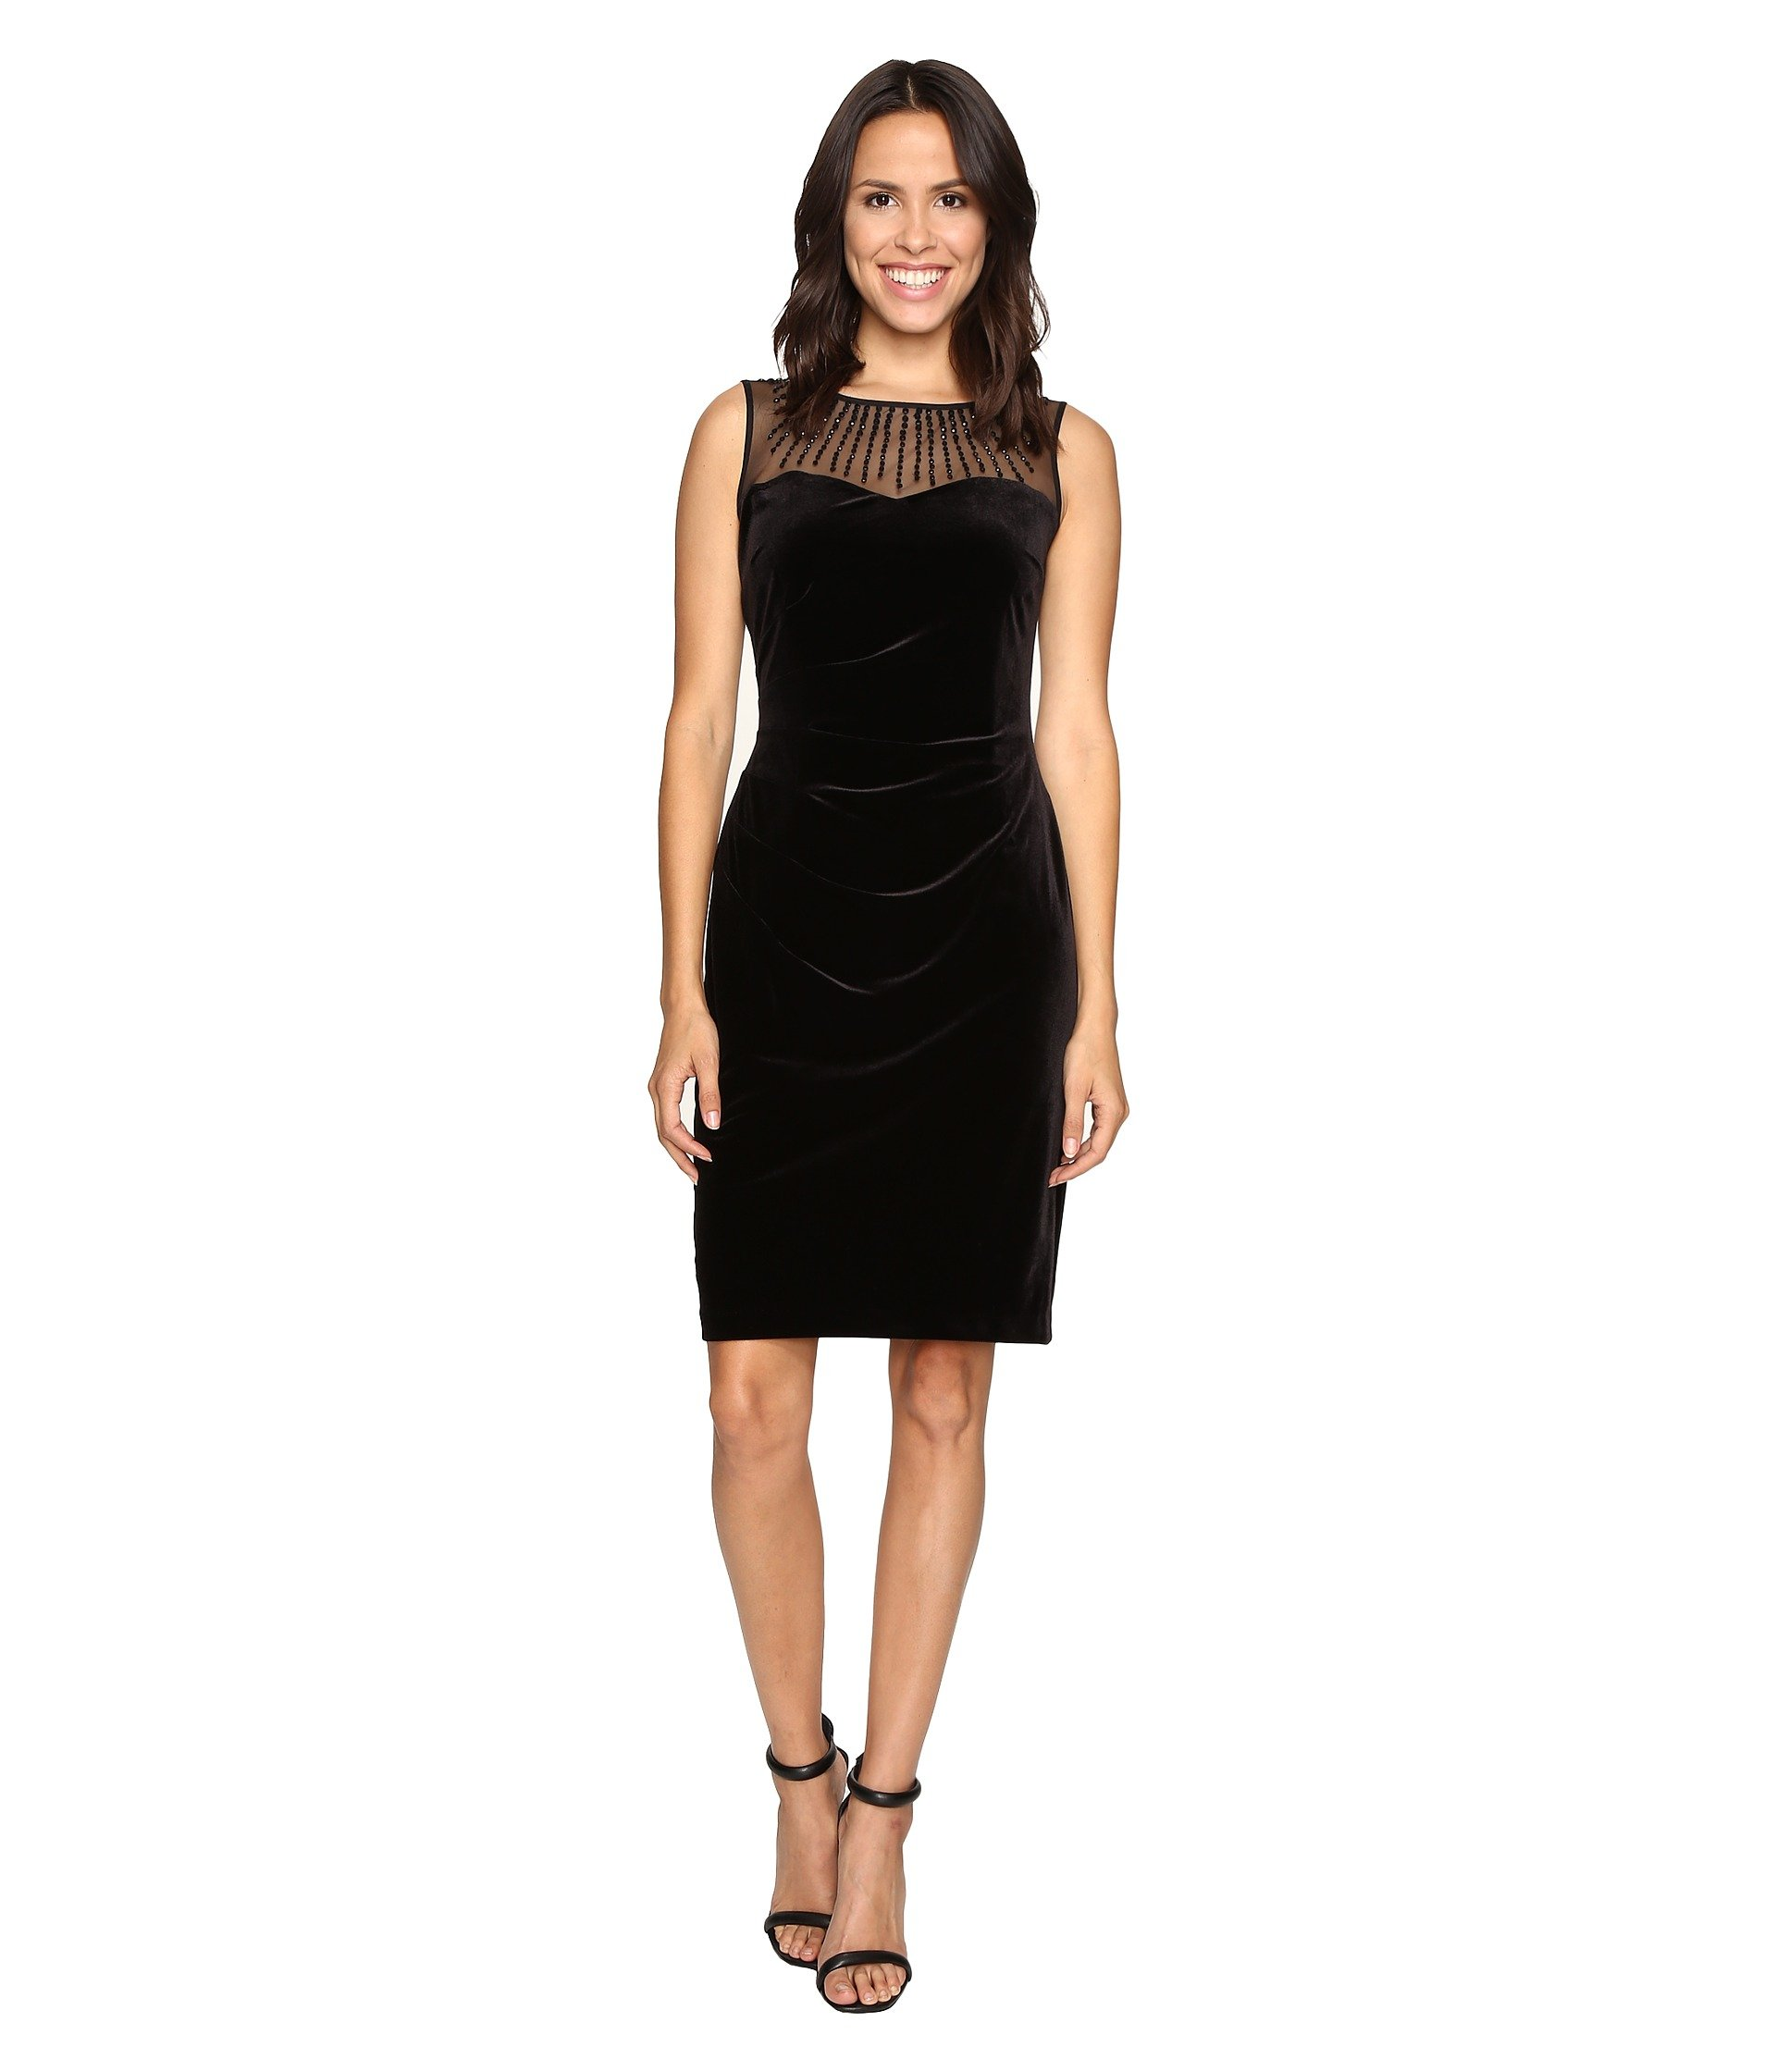 ELLEN TRACY Velvet Dress W/ Neckline Embellishment, Black